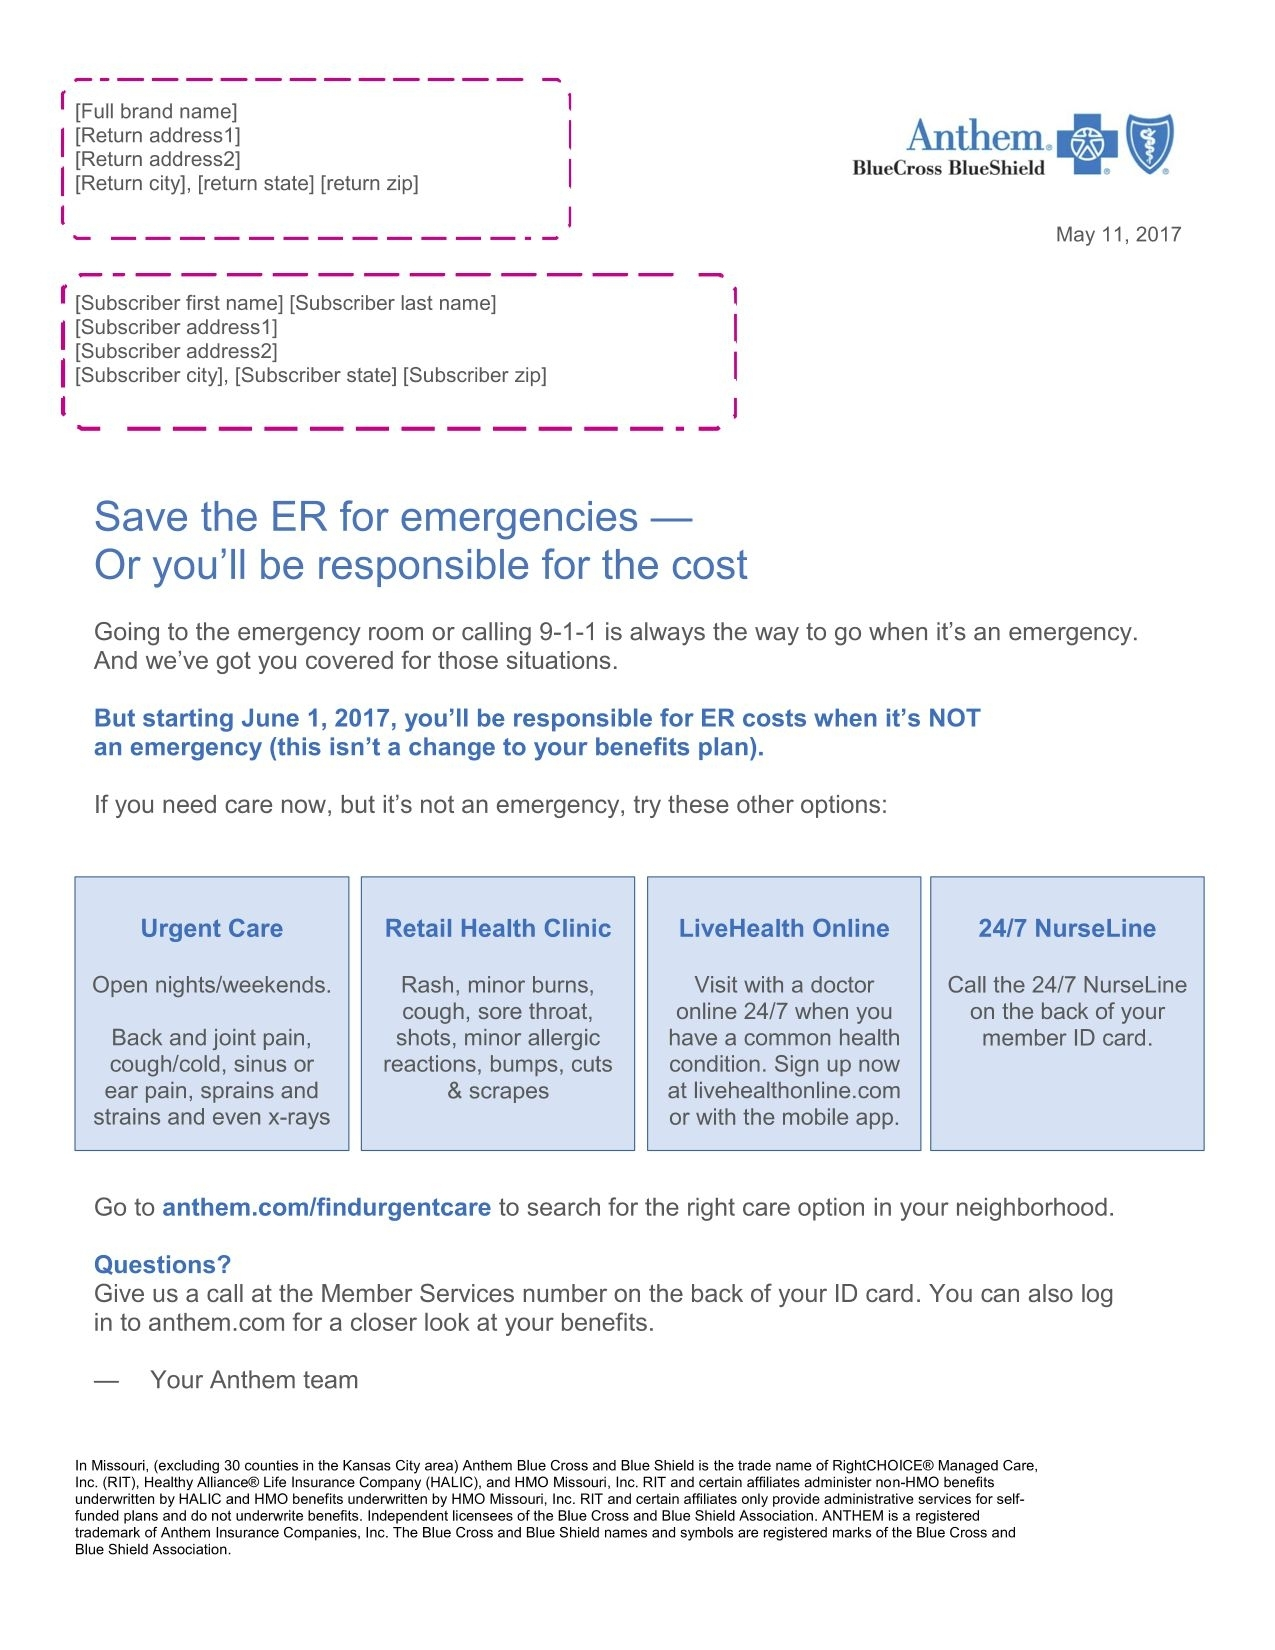 If You Have Anthem, You May Want To Think Twice About Going To The Er In Emergency